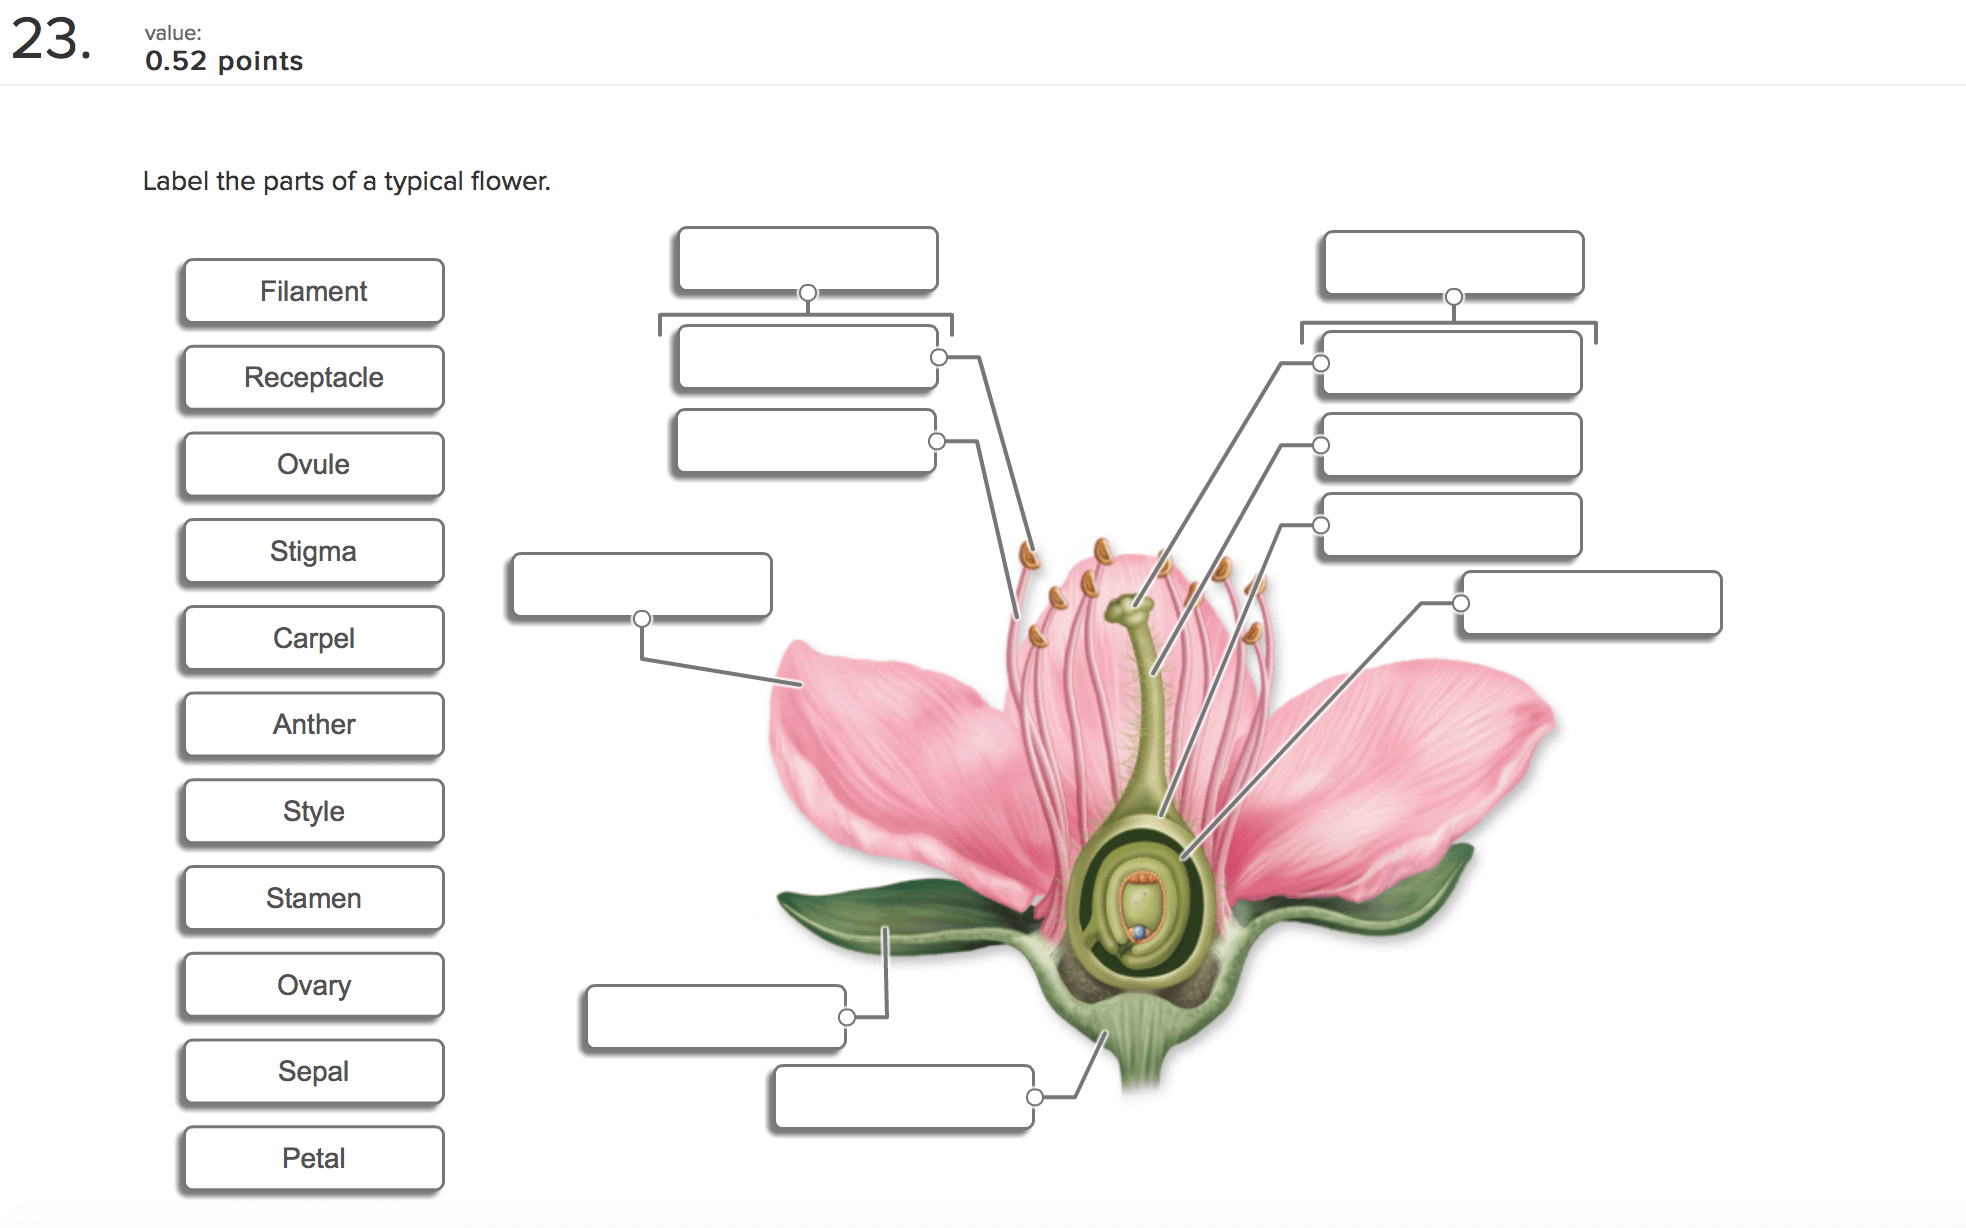 Blank Image Of Parts A Flower